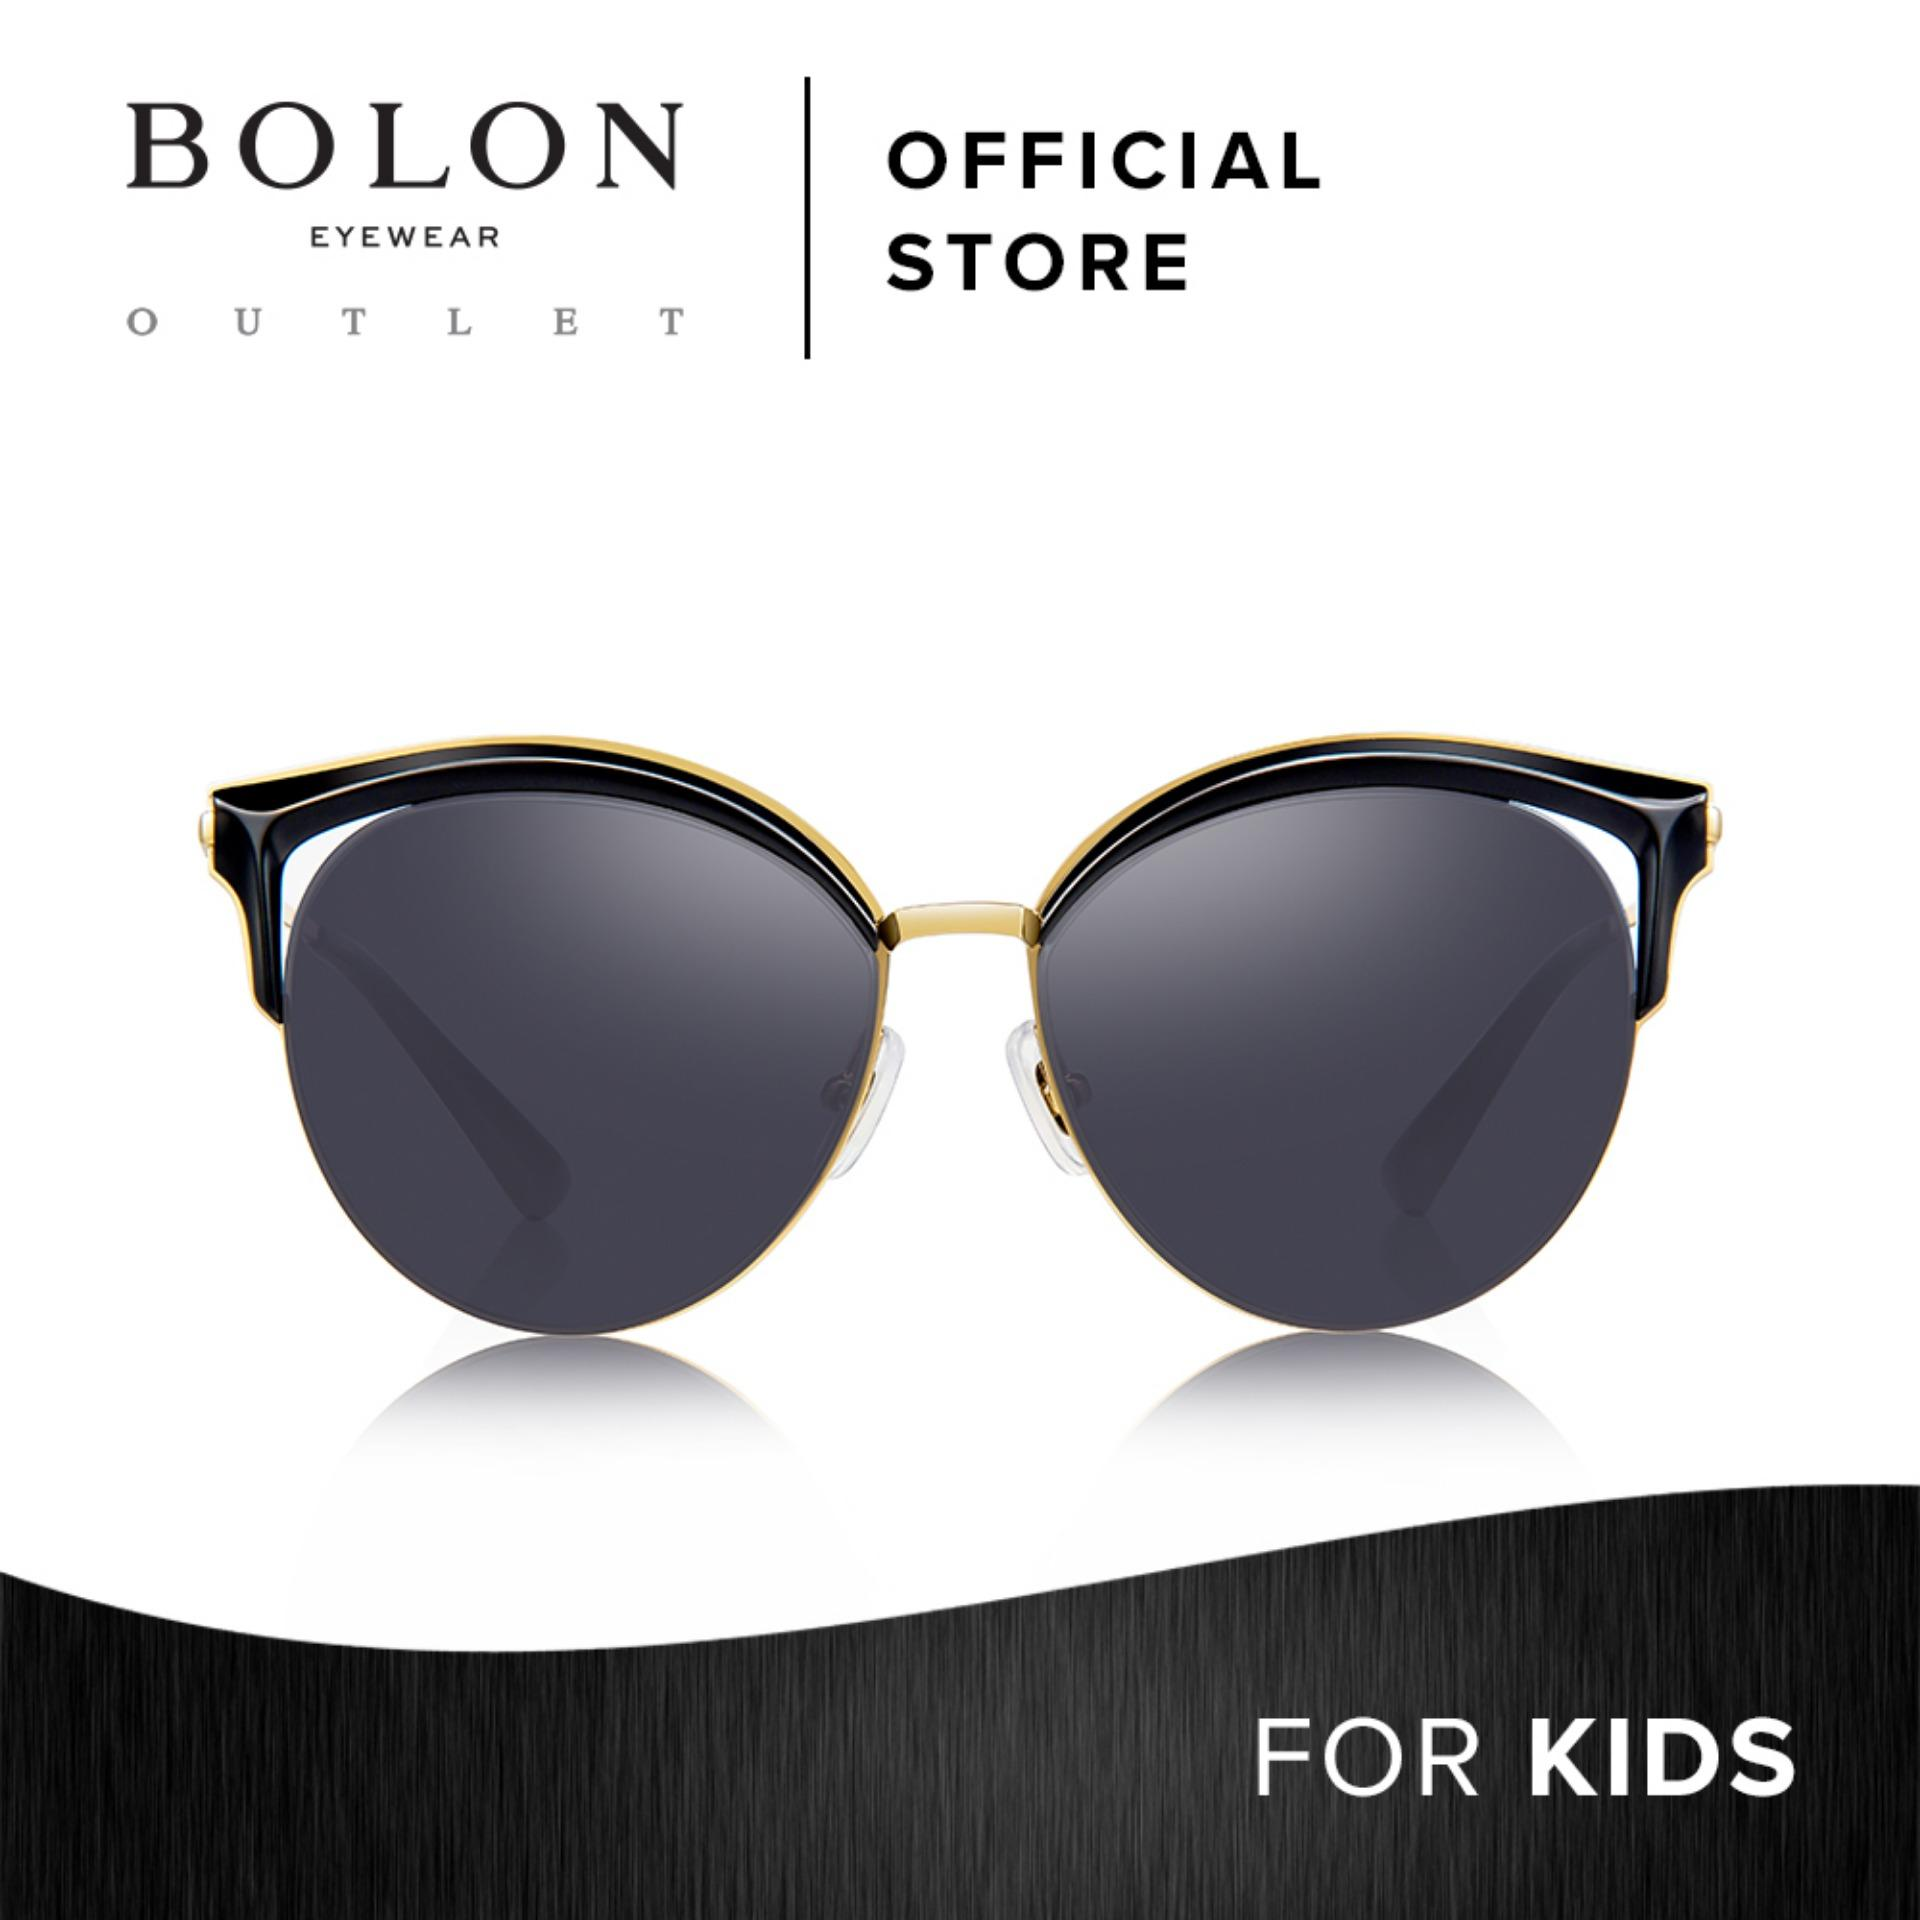 3ee24a1211 BOLON Eyewear Kids Cat Eye Sunglasses Petit Anne BK6006 Black Gold